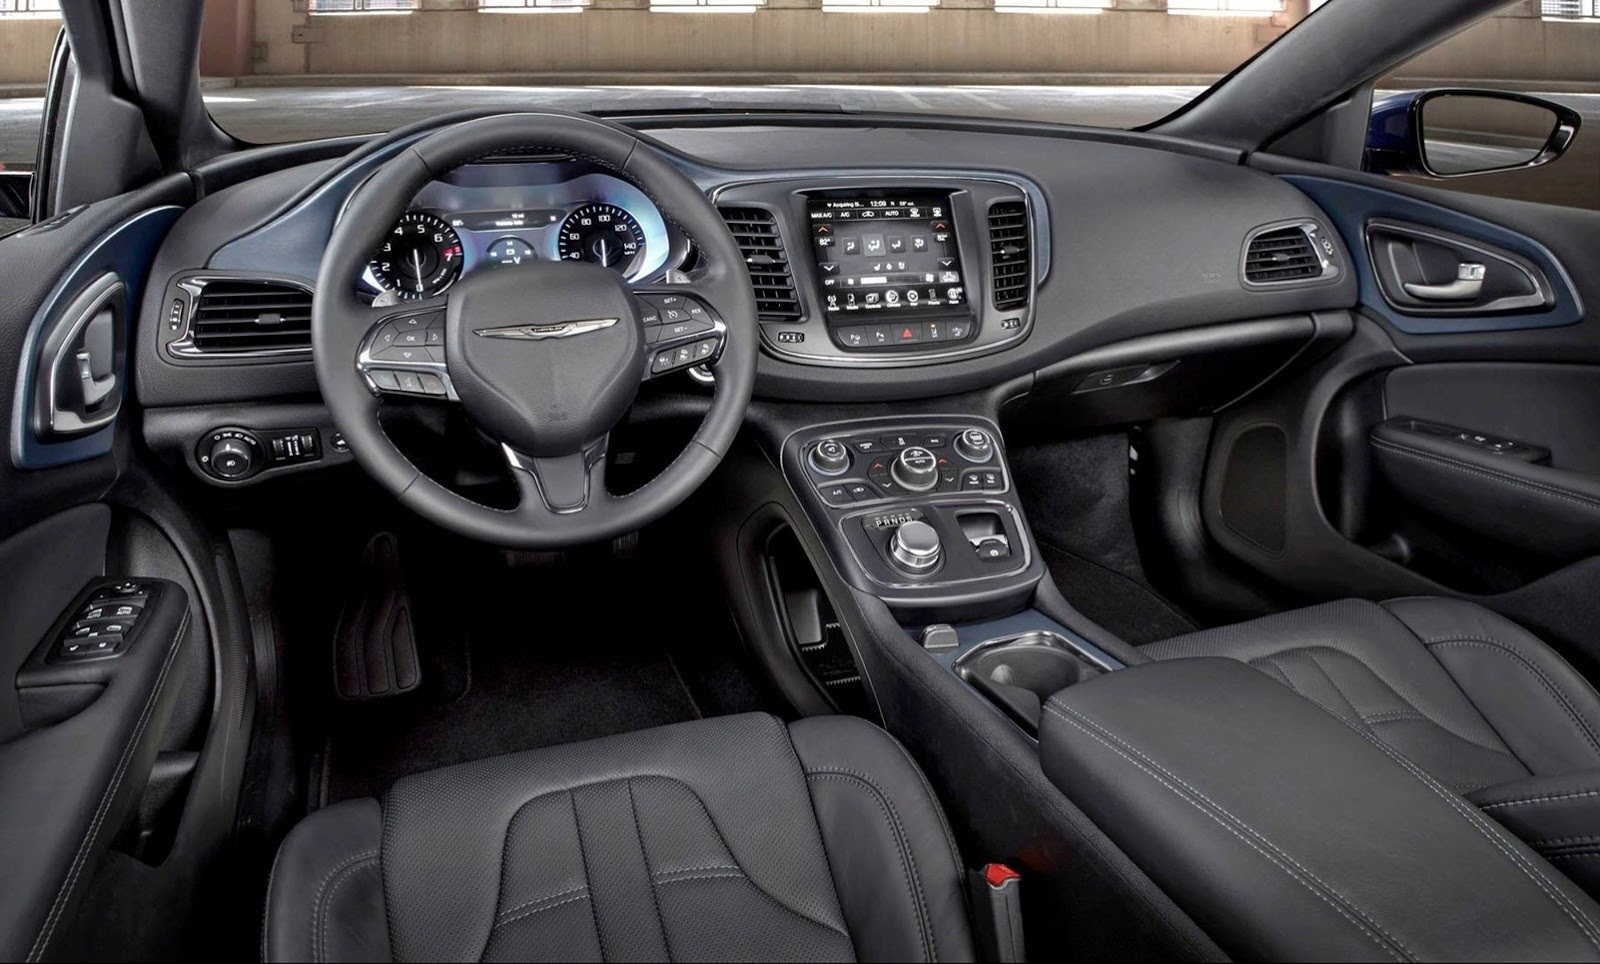 2015 Chrysler 200 Cockpit Interio (Photo 4 of 11)